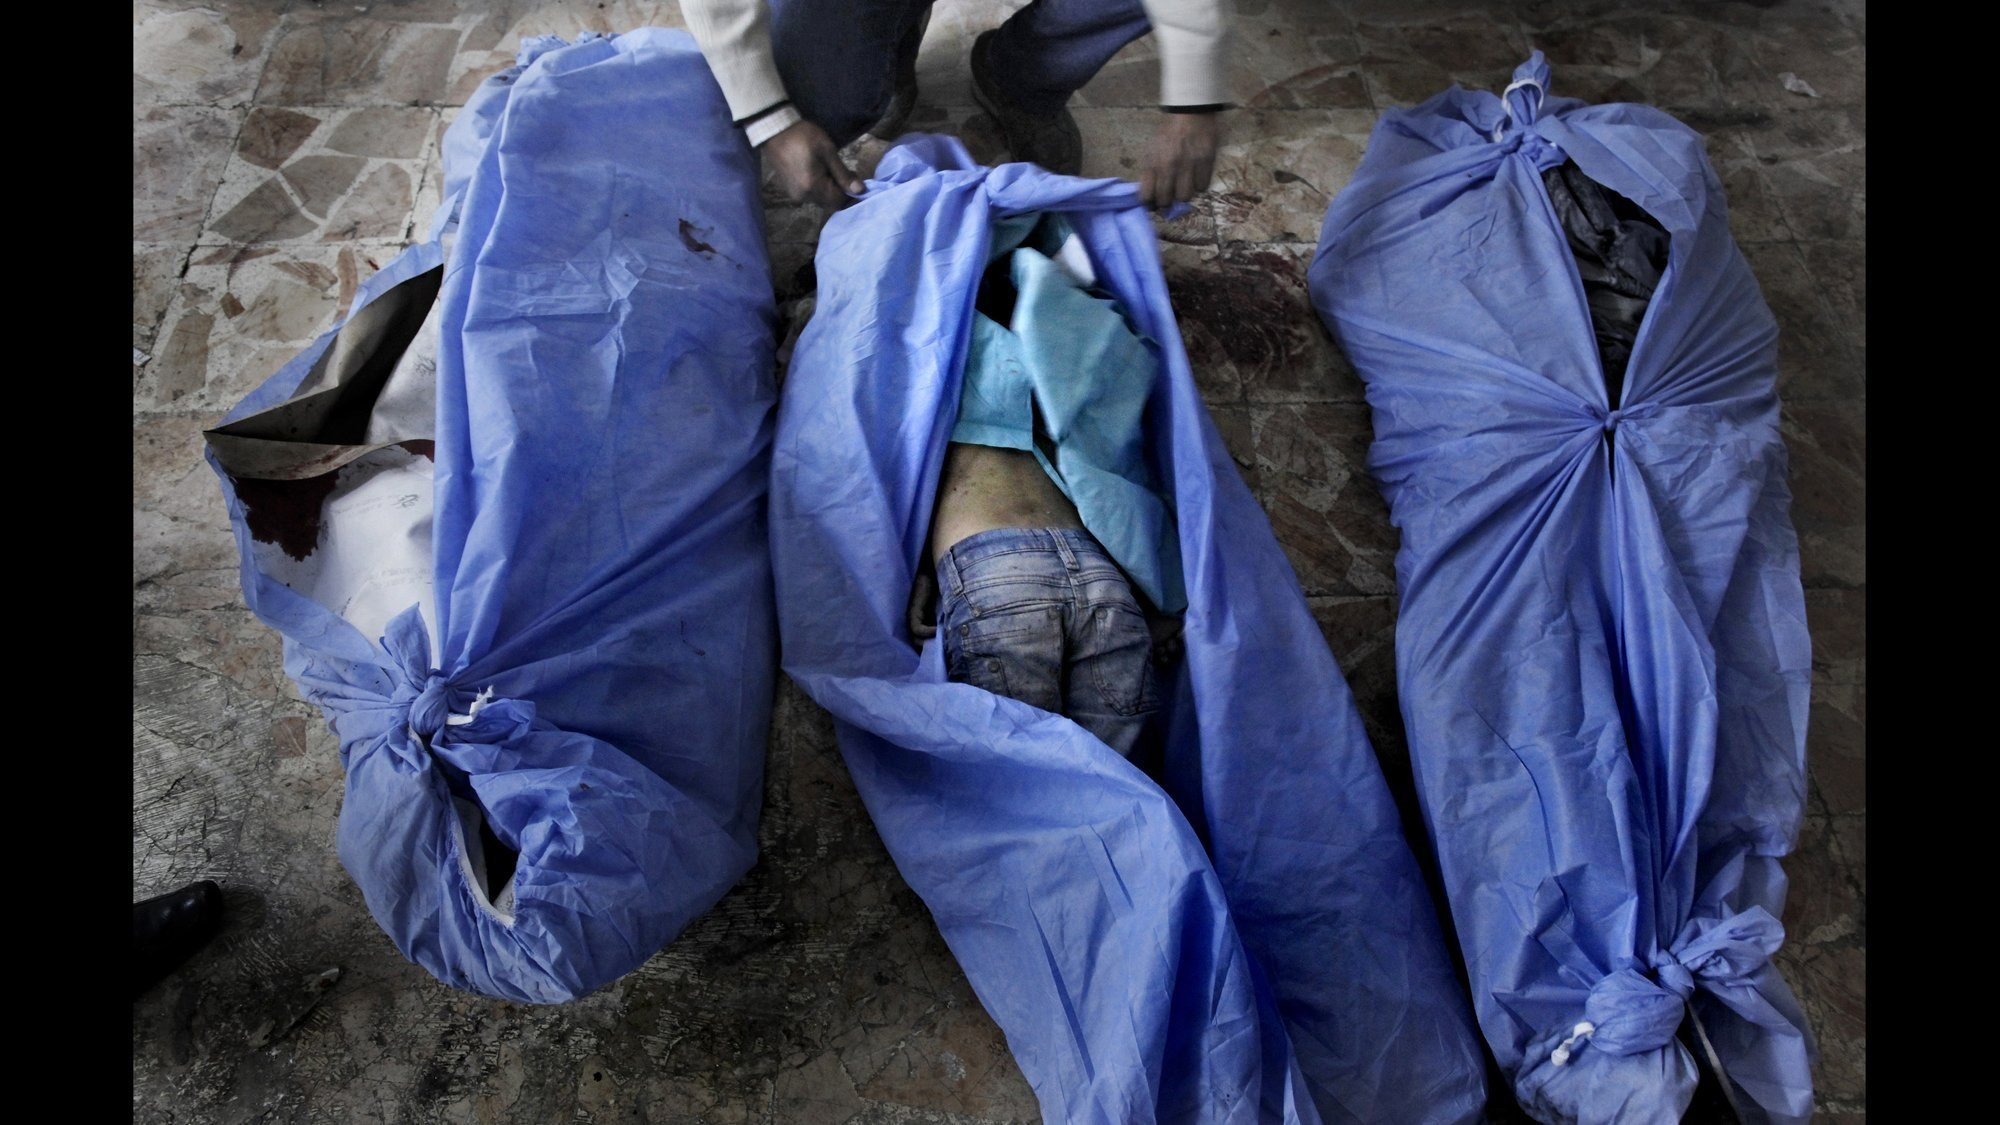 The bodies of three children are laid out for identification by family members at a makeshift hospital in Aleppo in 2012.